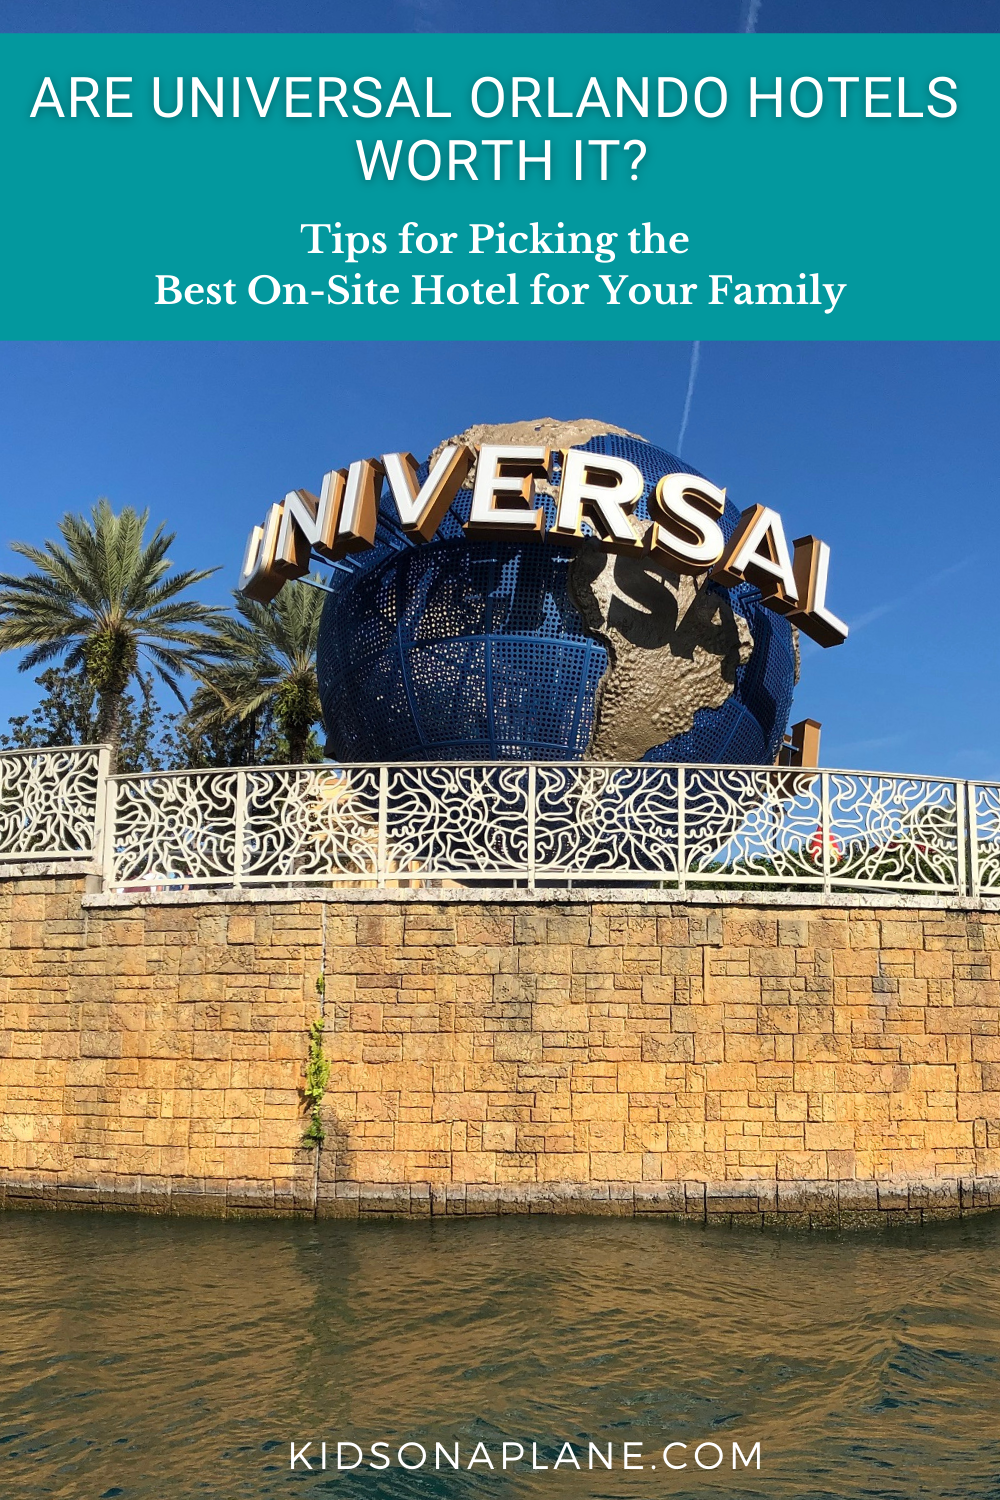 Universal Orlando Hotels - Are they really worth it and tips for choosing the best one for your family